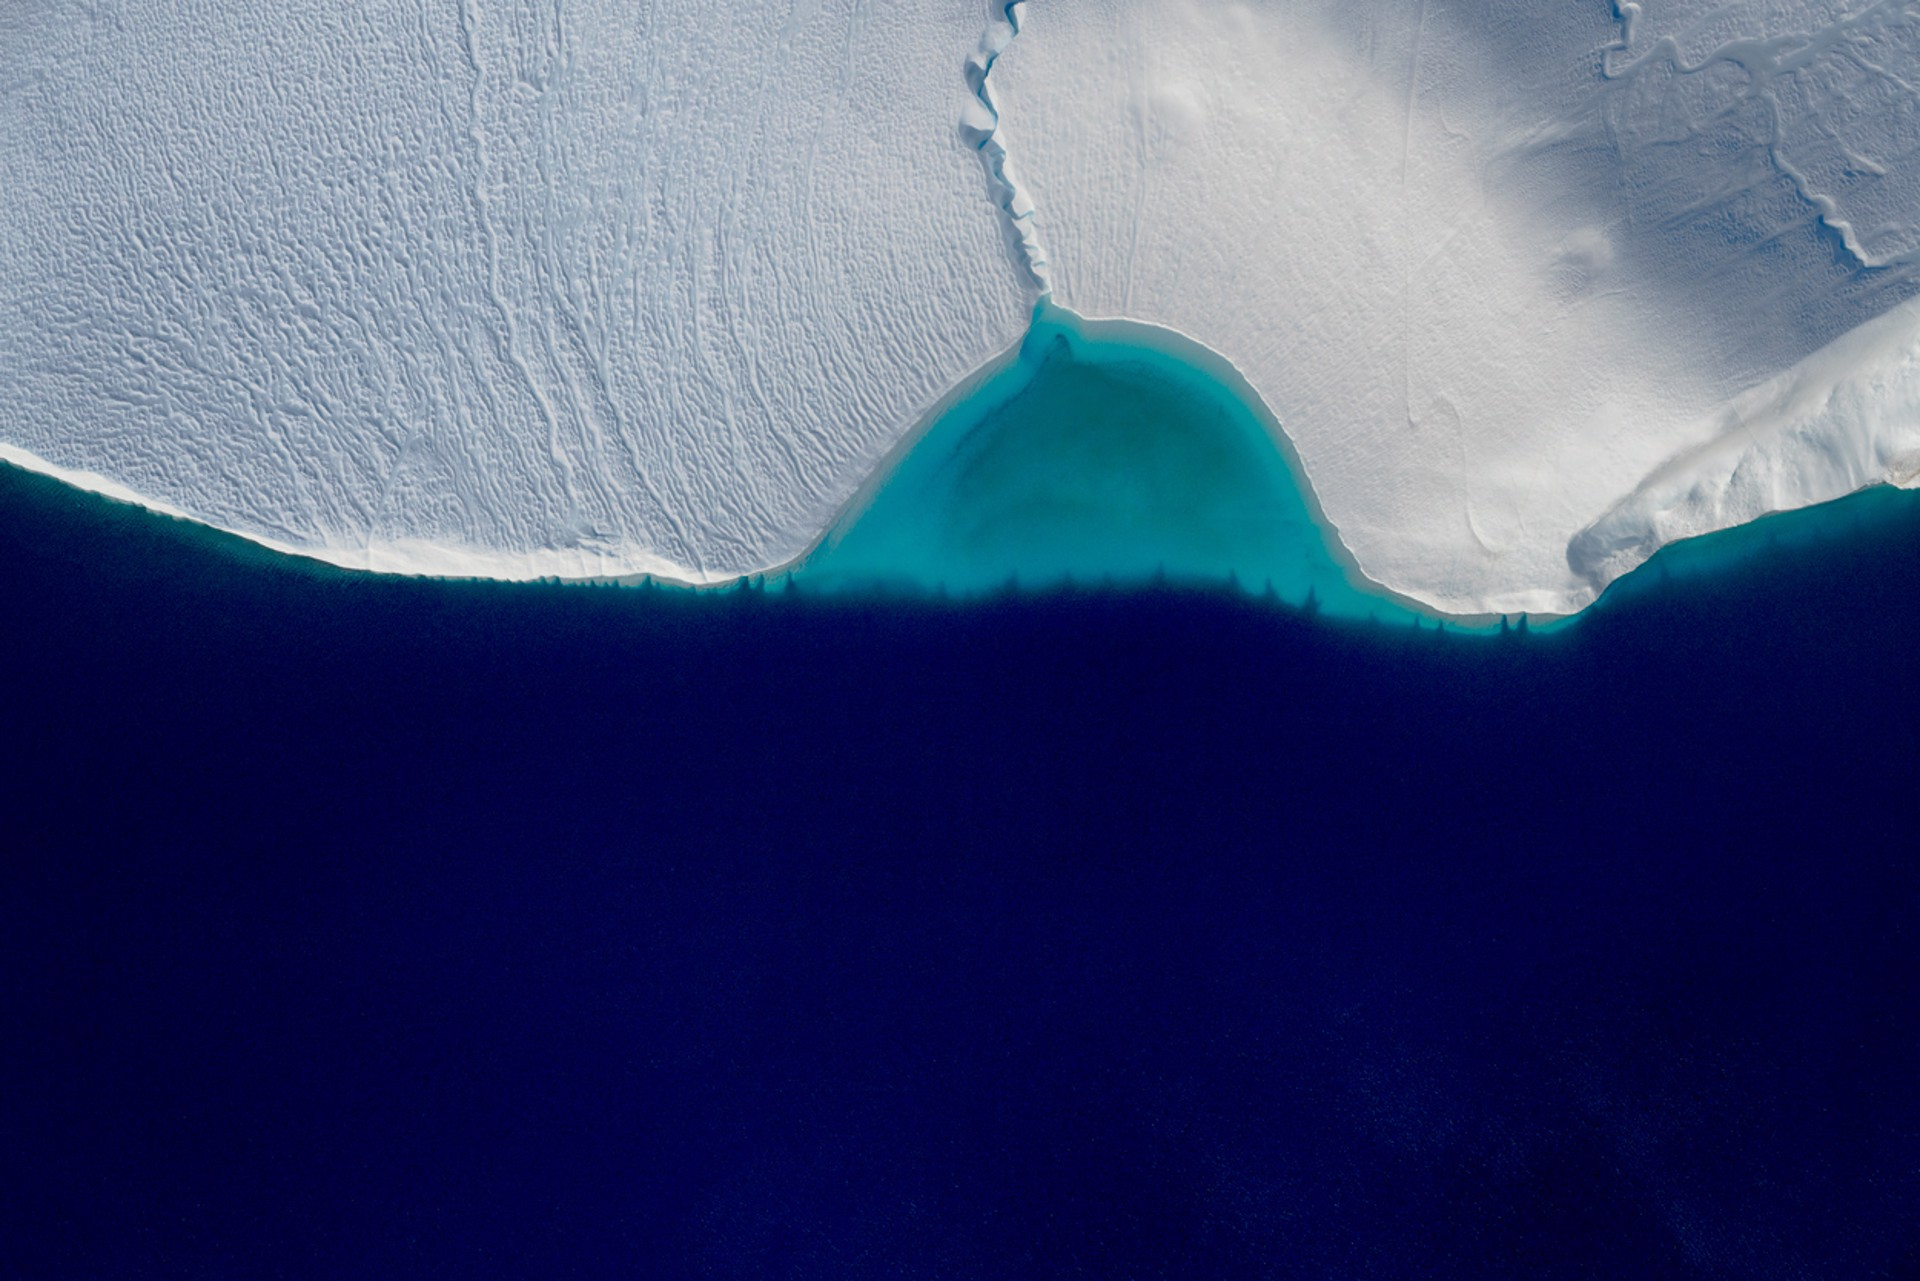 Breakwater, Ilulissat Icefjord, Greenland Ed. 1/10 by Dinesh Boaz